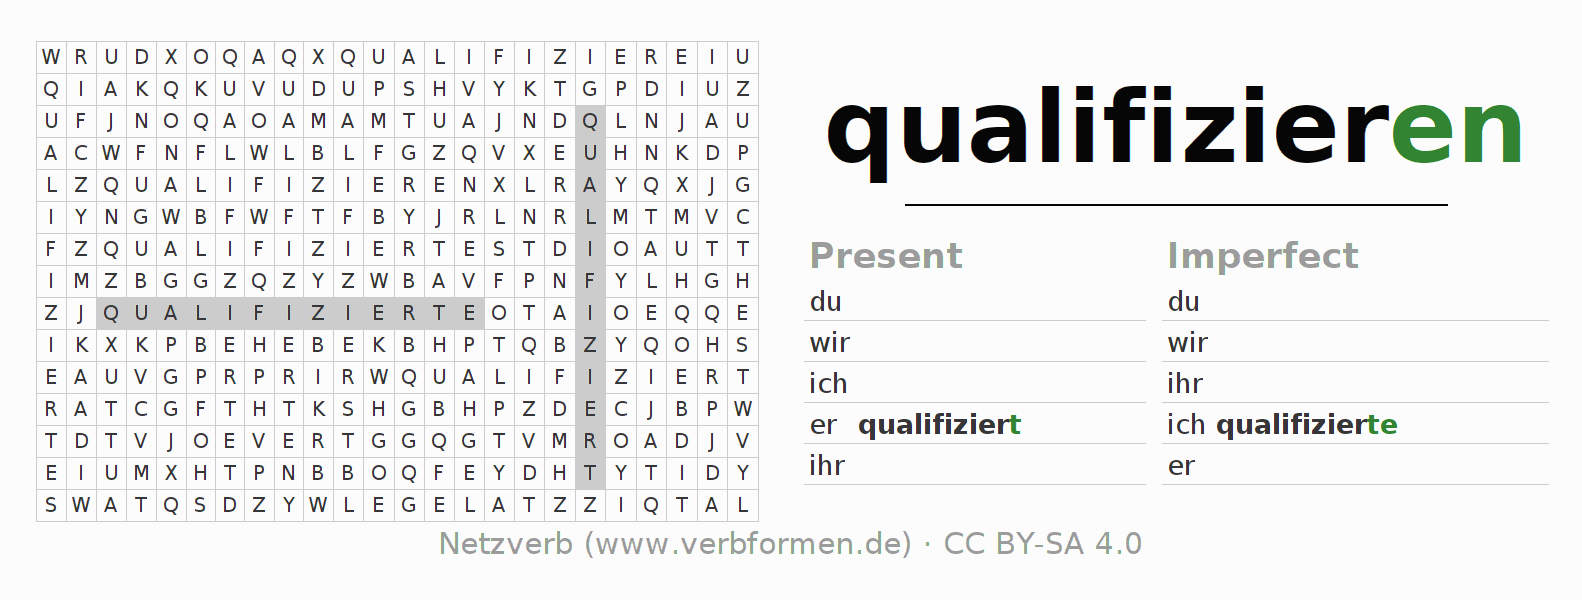 Word search puzzle for the conjugation of the verb qualifizieren